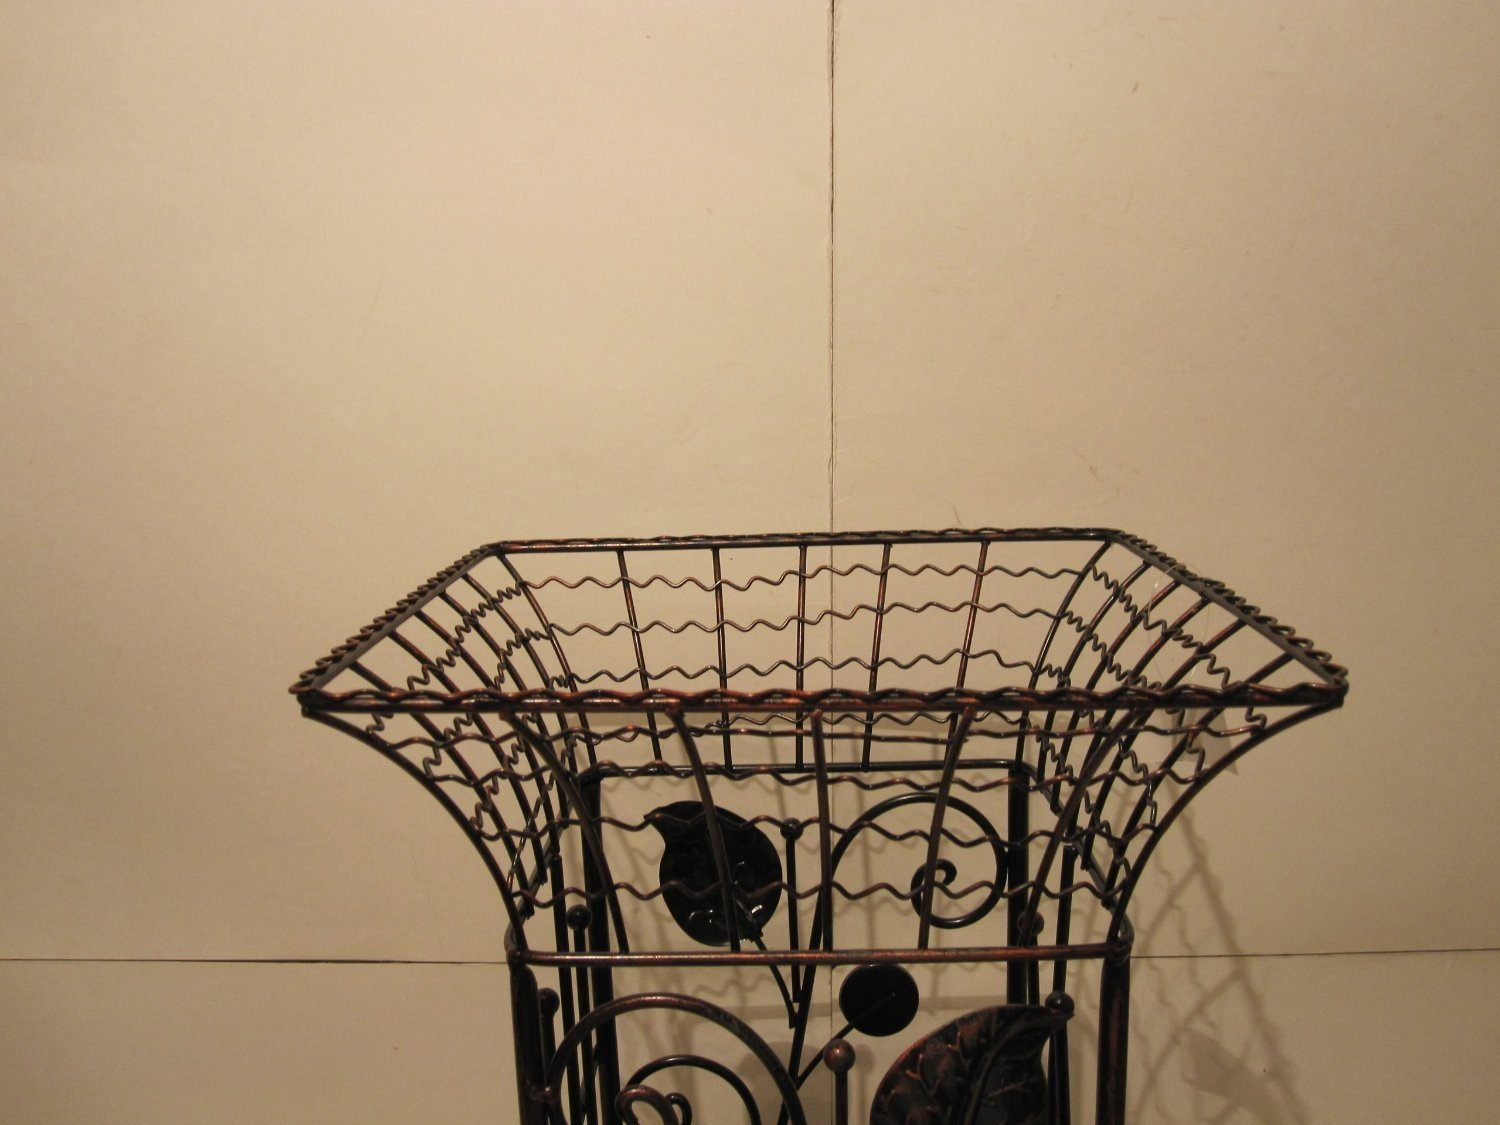 Square Metal Wrought Iron Umbrella Holder Stand, Antique Style Look UNITED DECOR 5079